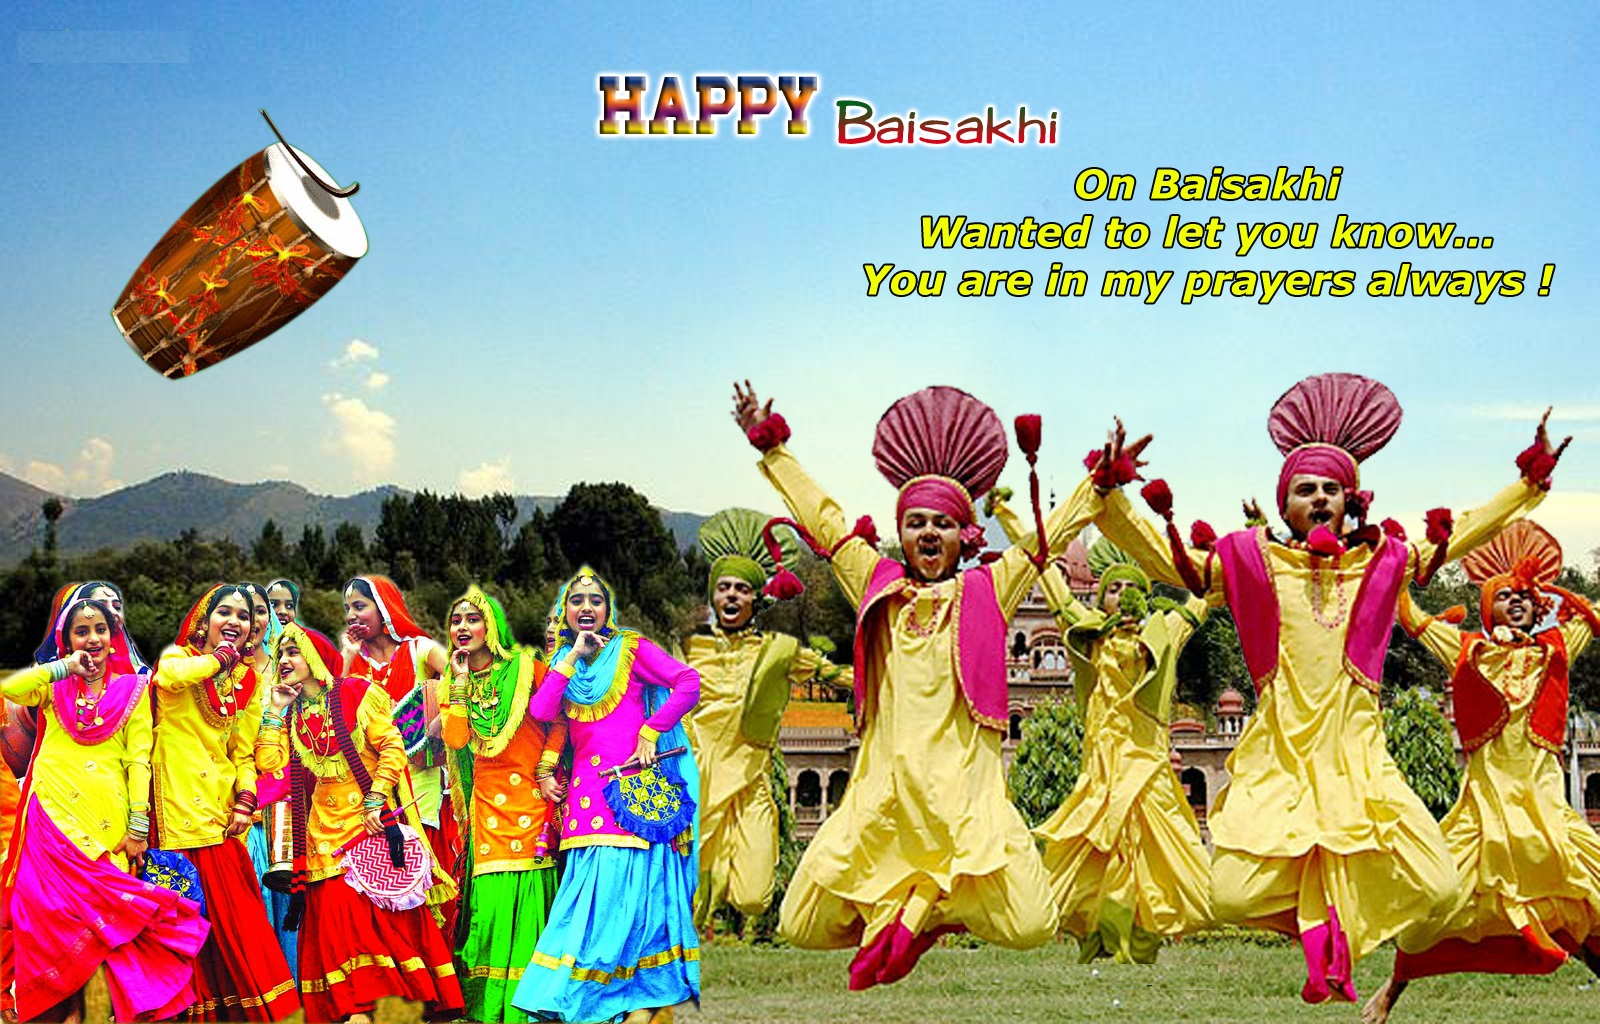 Top 10 Baisakhi Wishes, Quotes 2018 for Whatsapp and Facebook